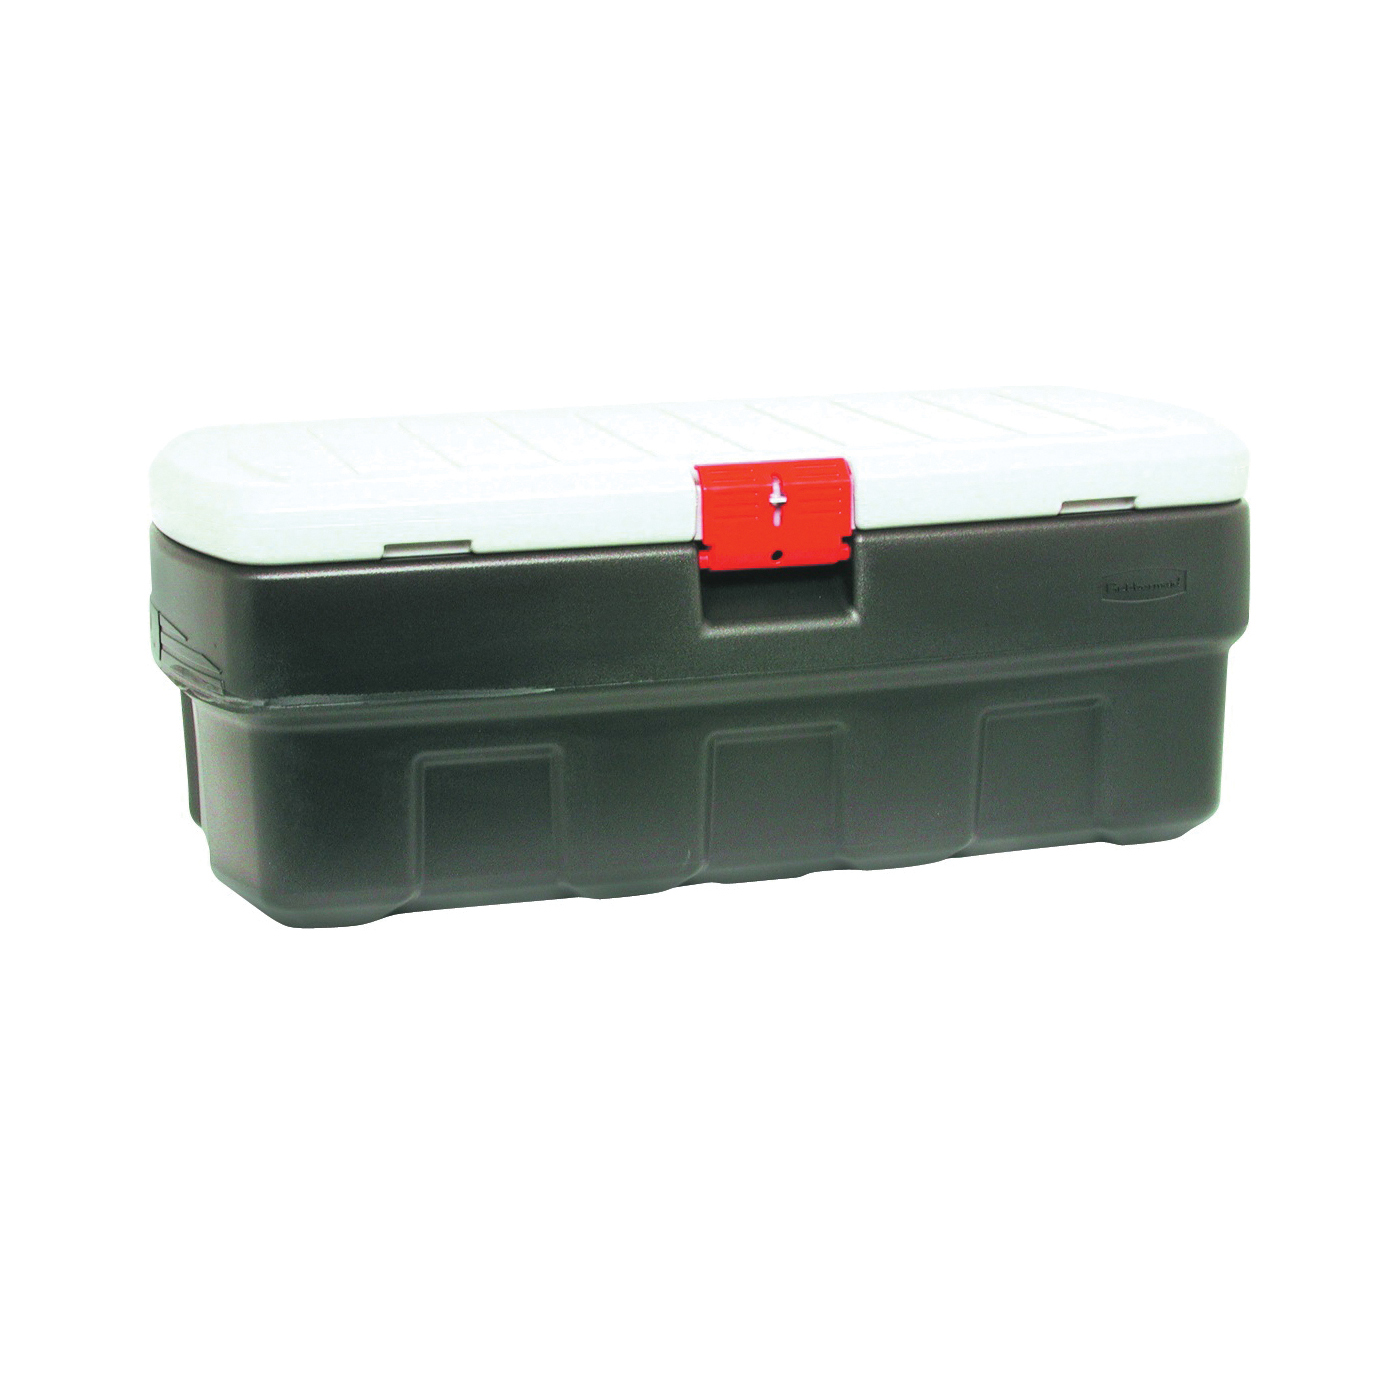 Picture of Rubbermaid ActionPacker RMAP480000 Storage Box, Plastic, Black, 43.8 in L, 20 in W, 17 in H